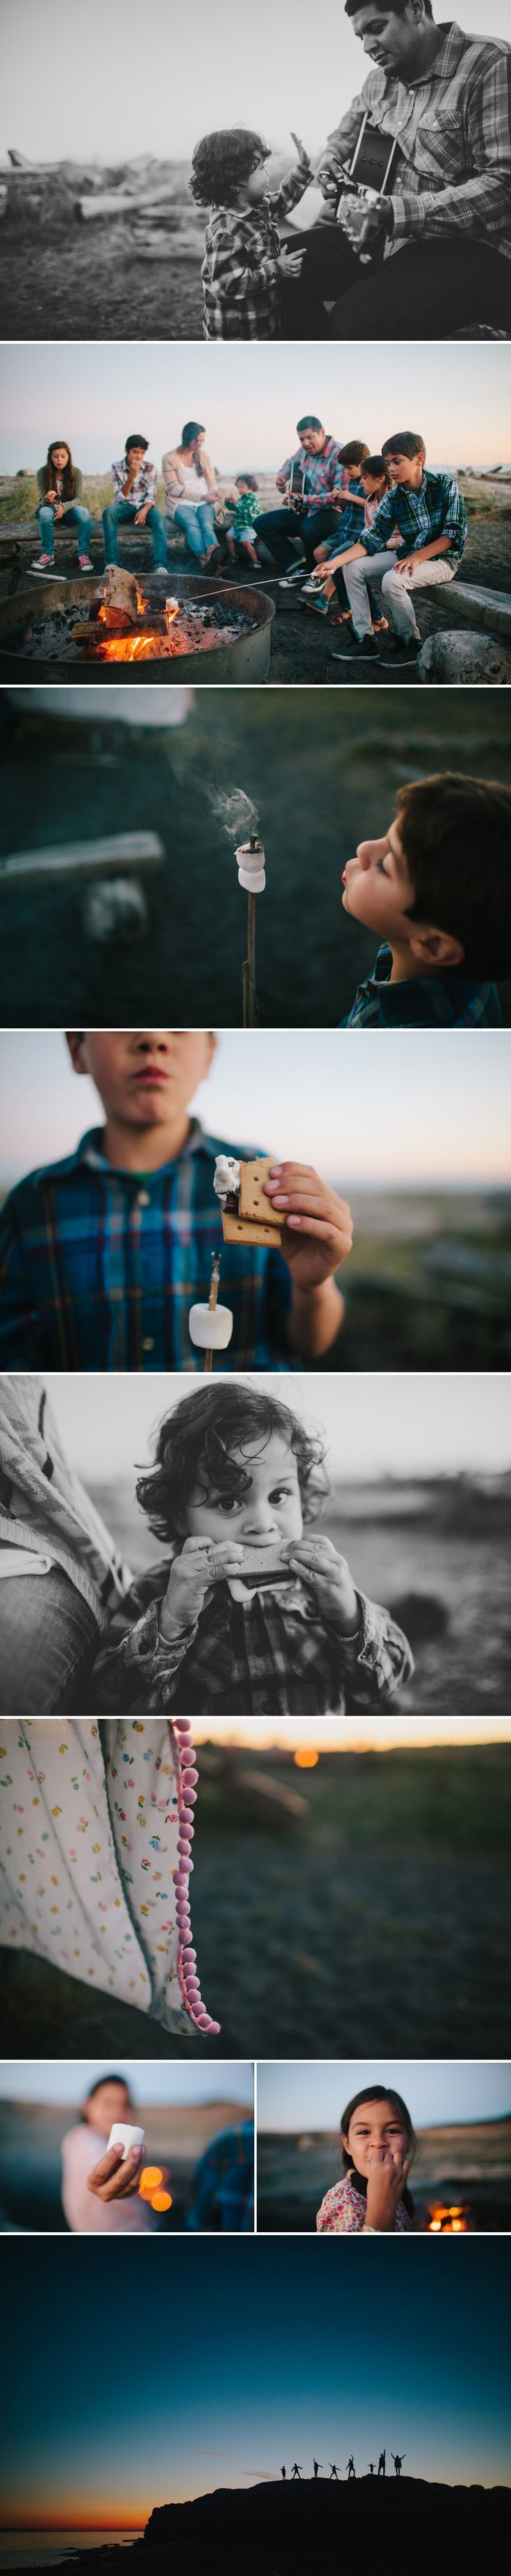 Documentary   Lifestyle   Real Moments   Photography   Family Time Around the Campfire with S'mores